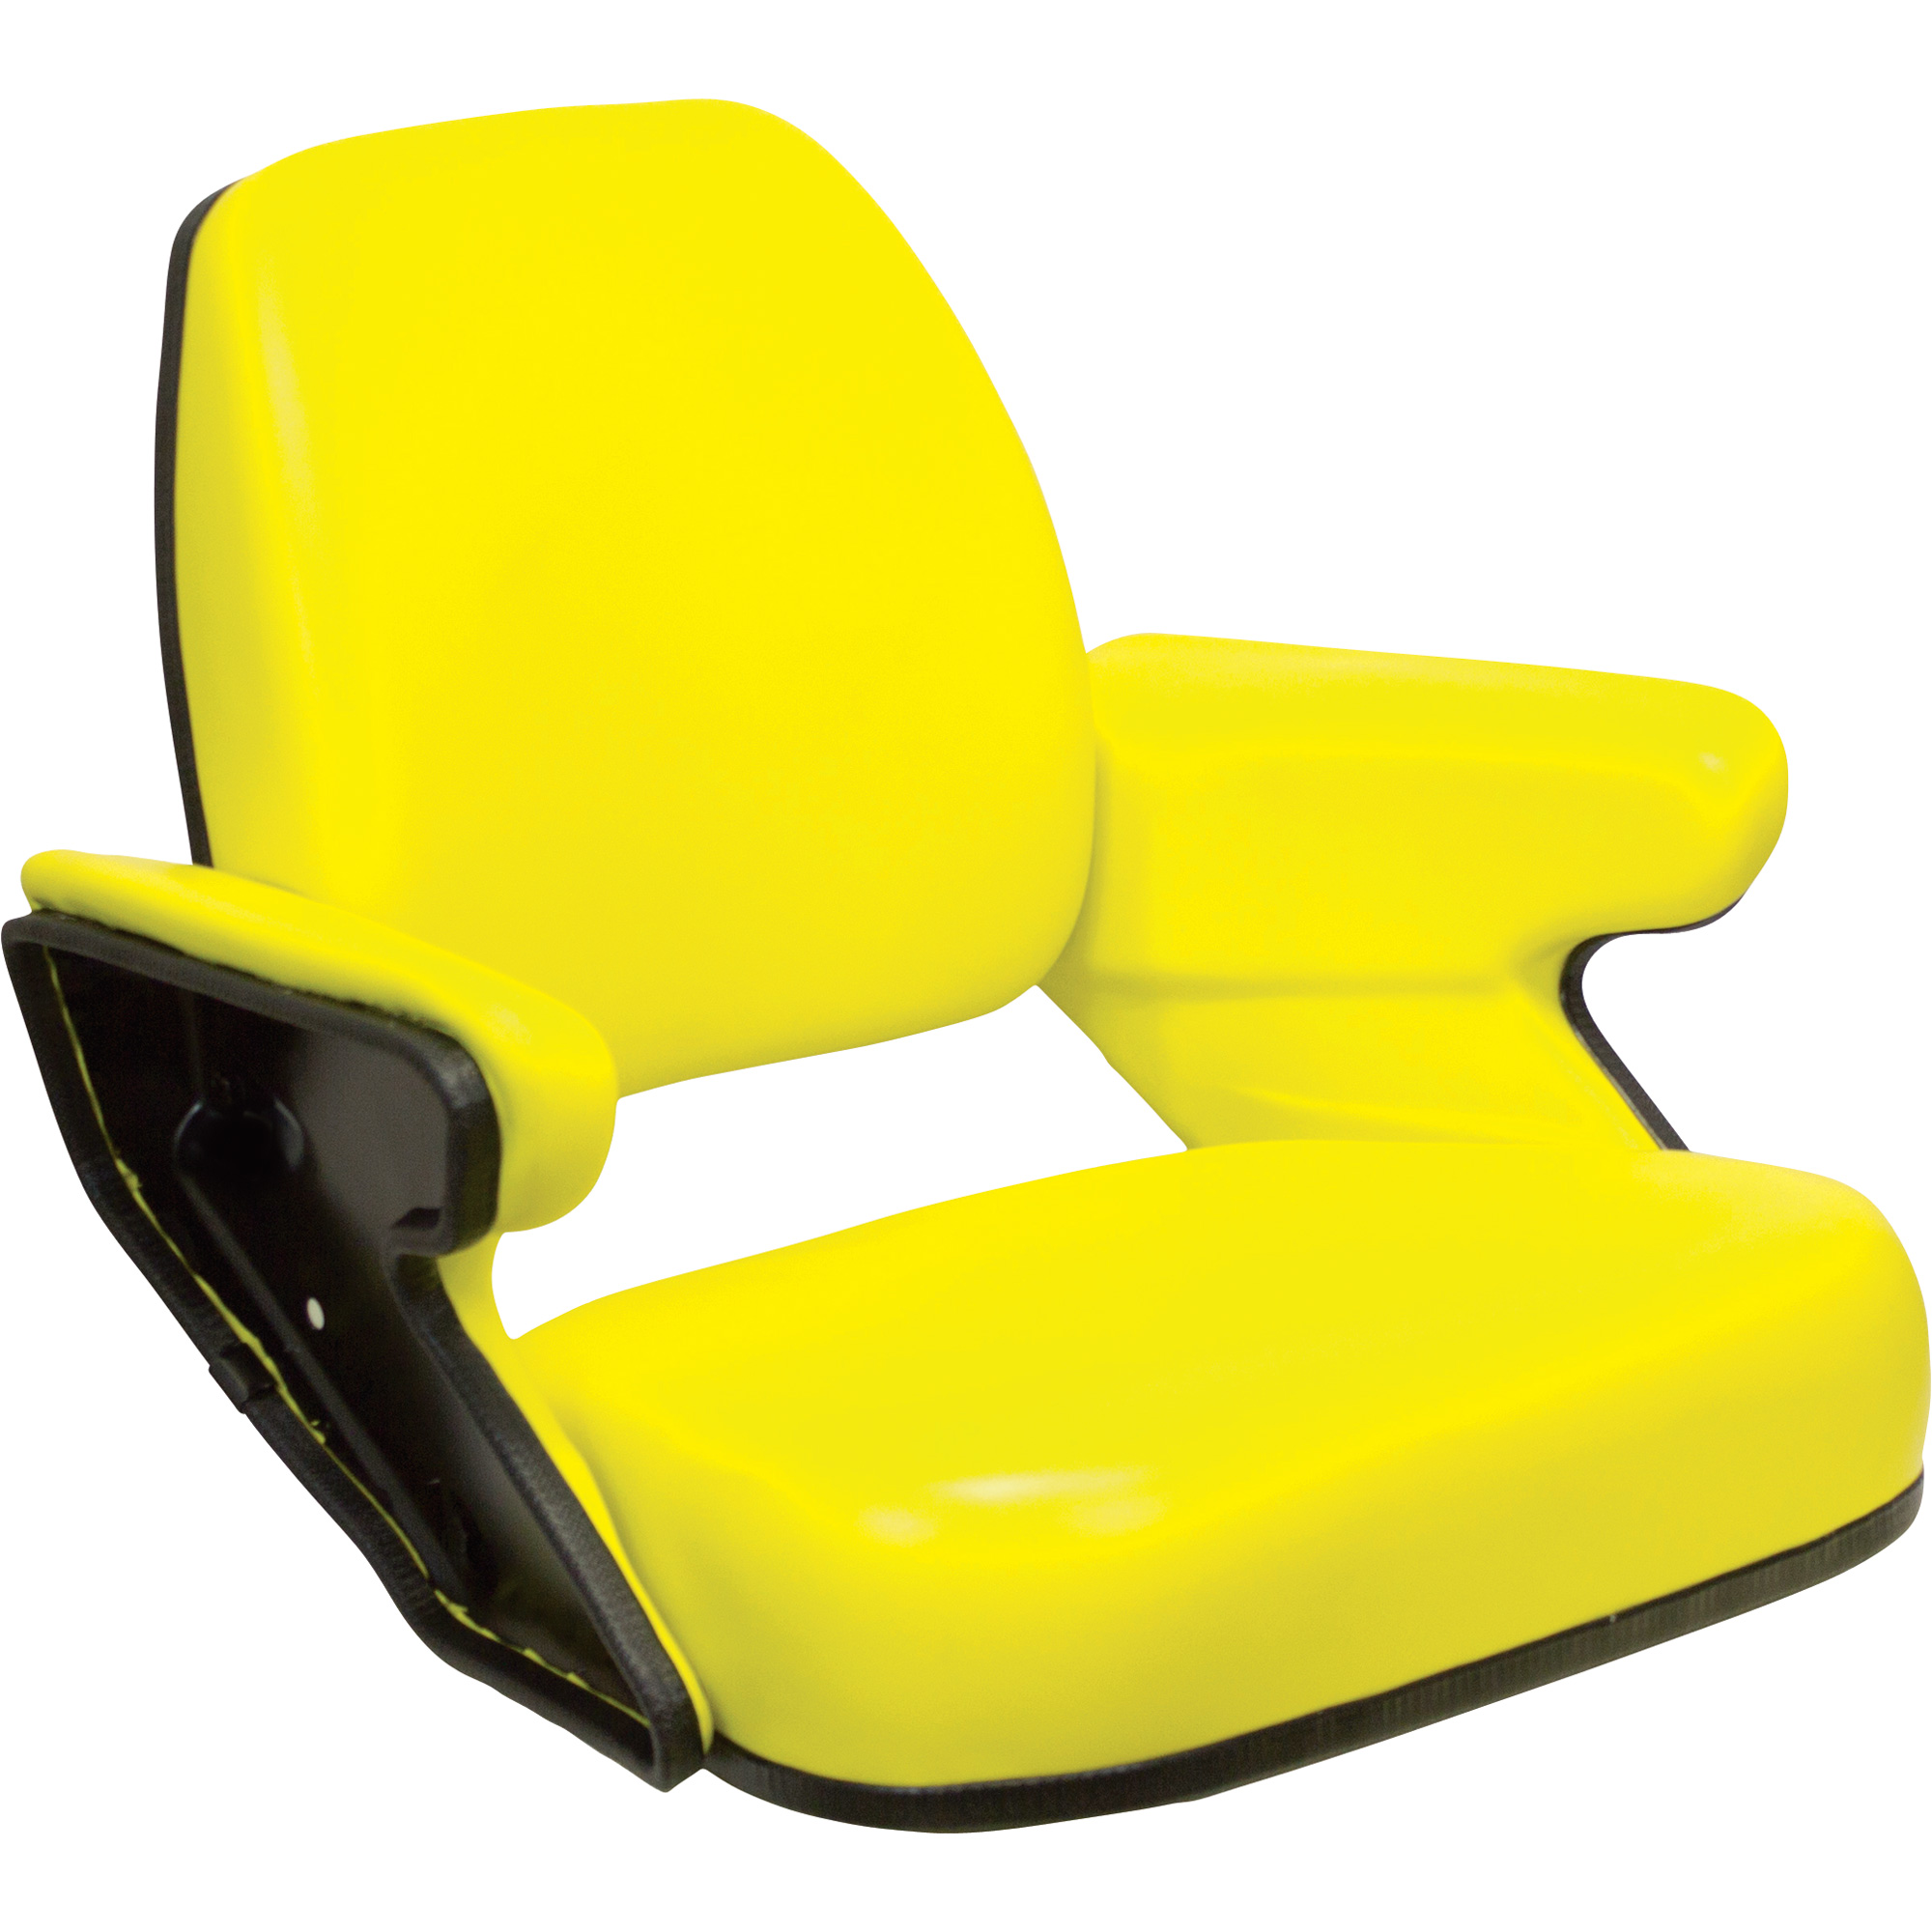 K And M Tractor Seats : K m open station tractor seat — yellow for john deere